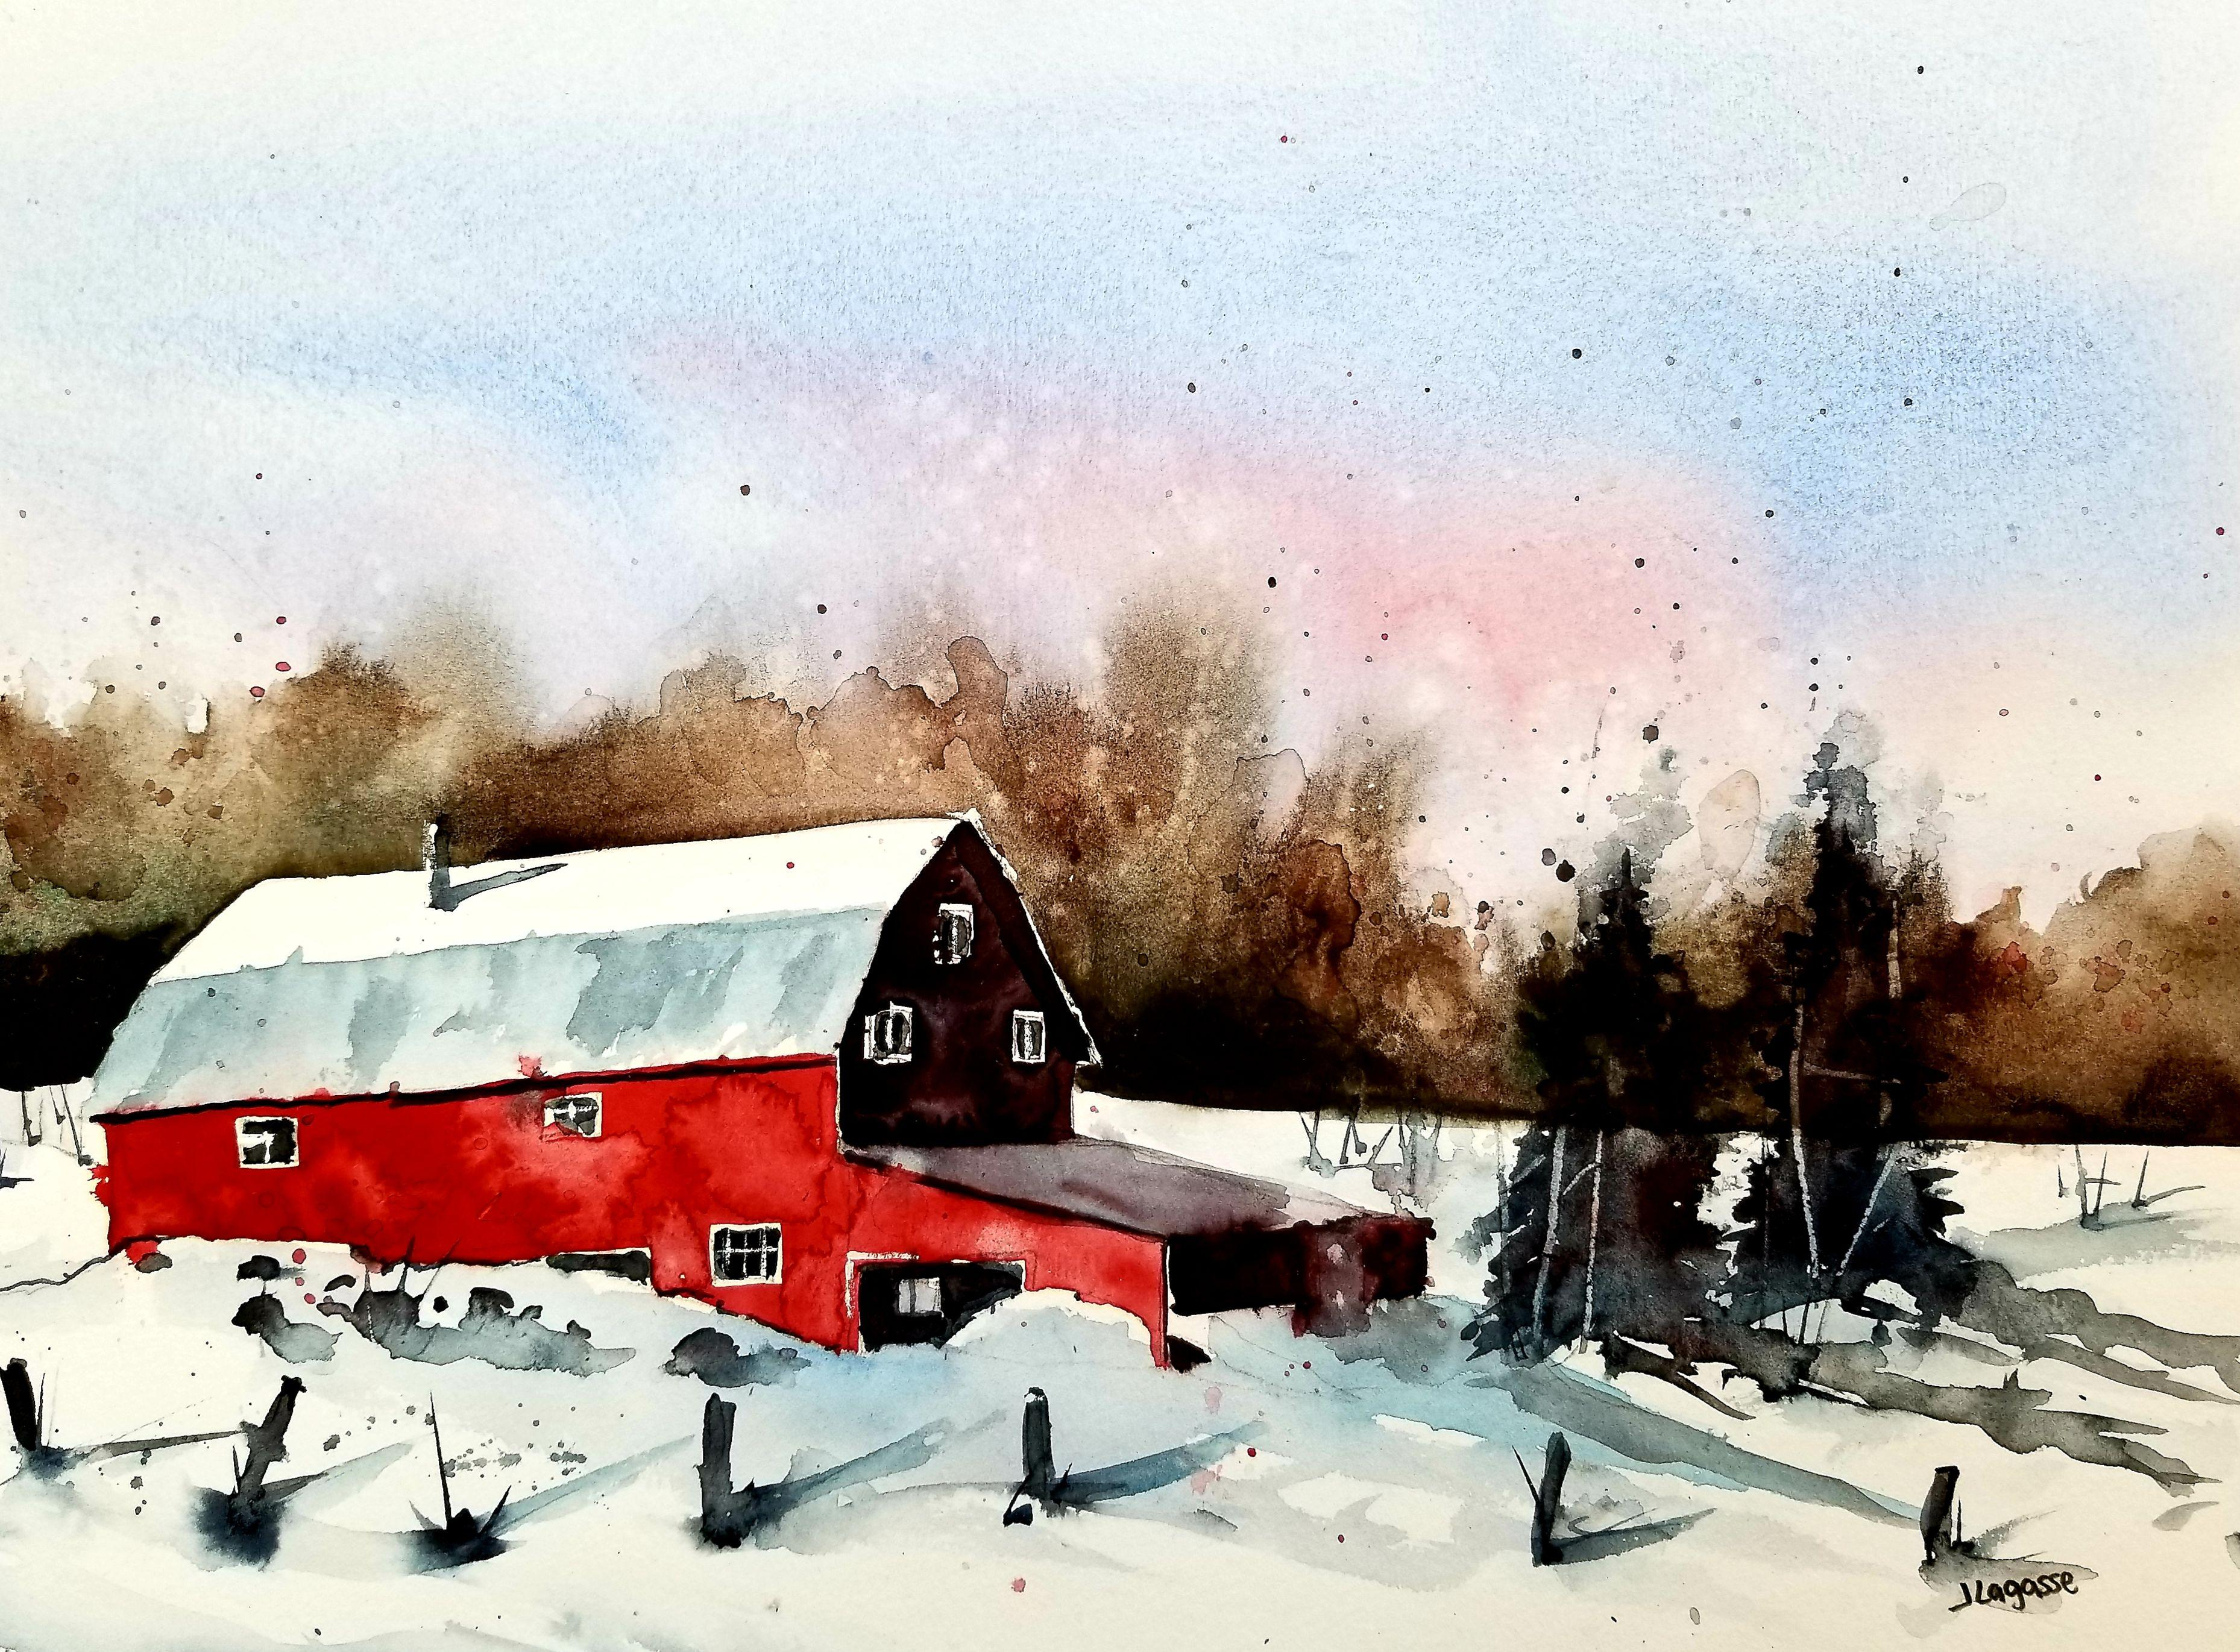 Red Barn, Painting, Watercolor on Watercolor Paper